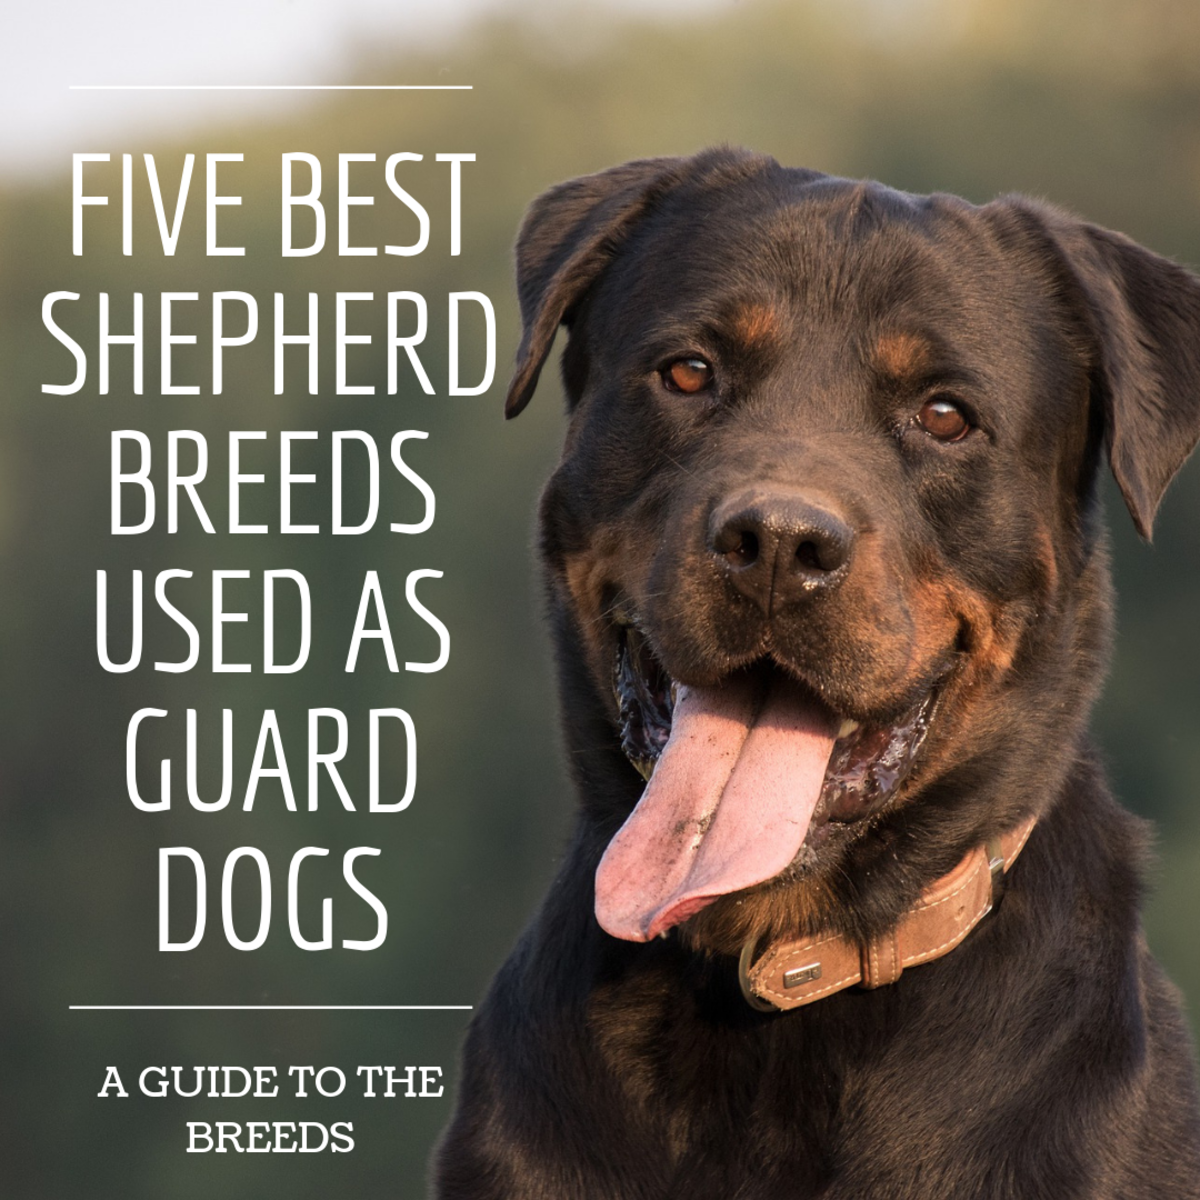 The Five Best Shepherd Dog Breeds for Protection